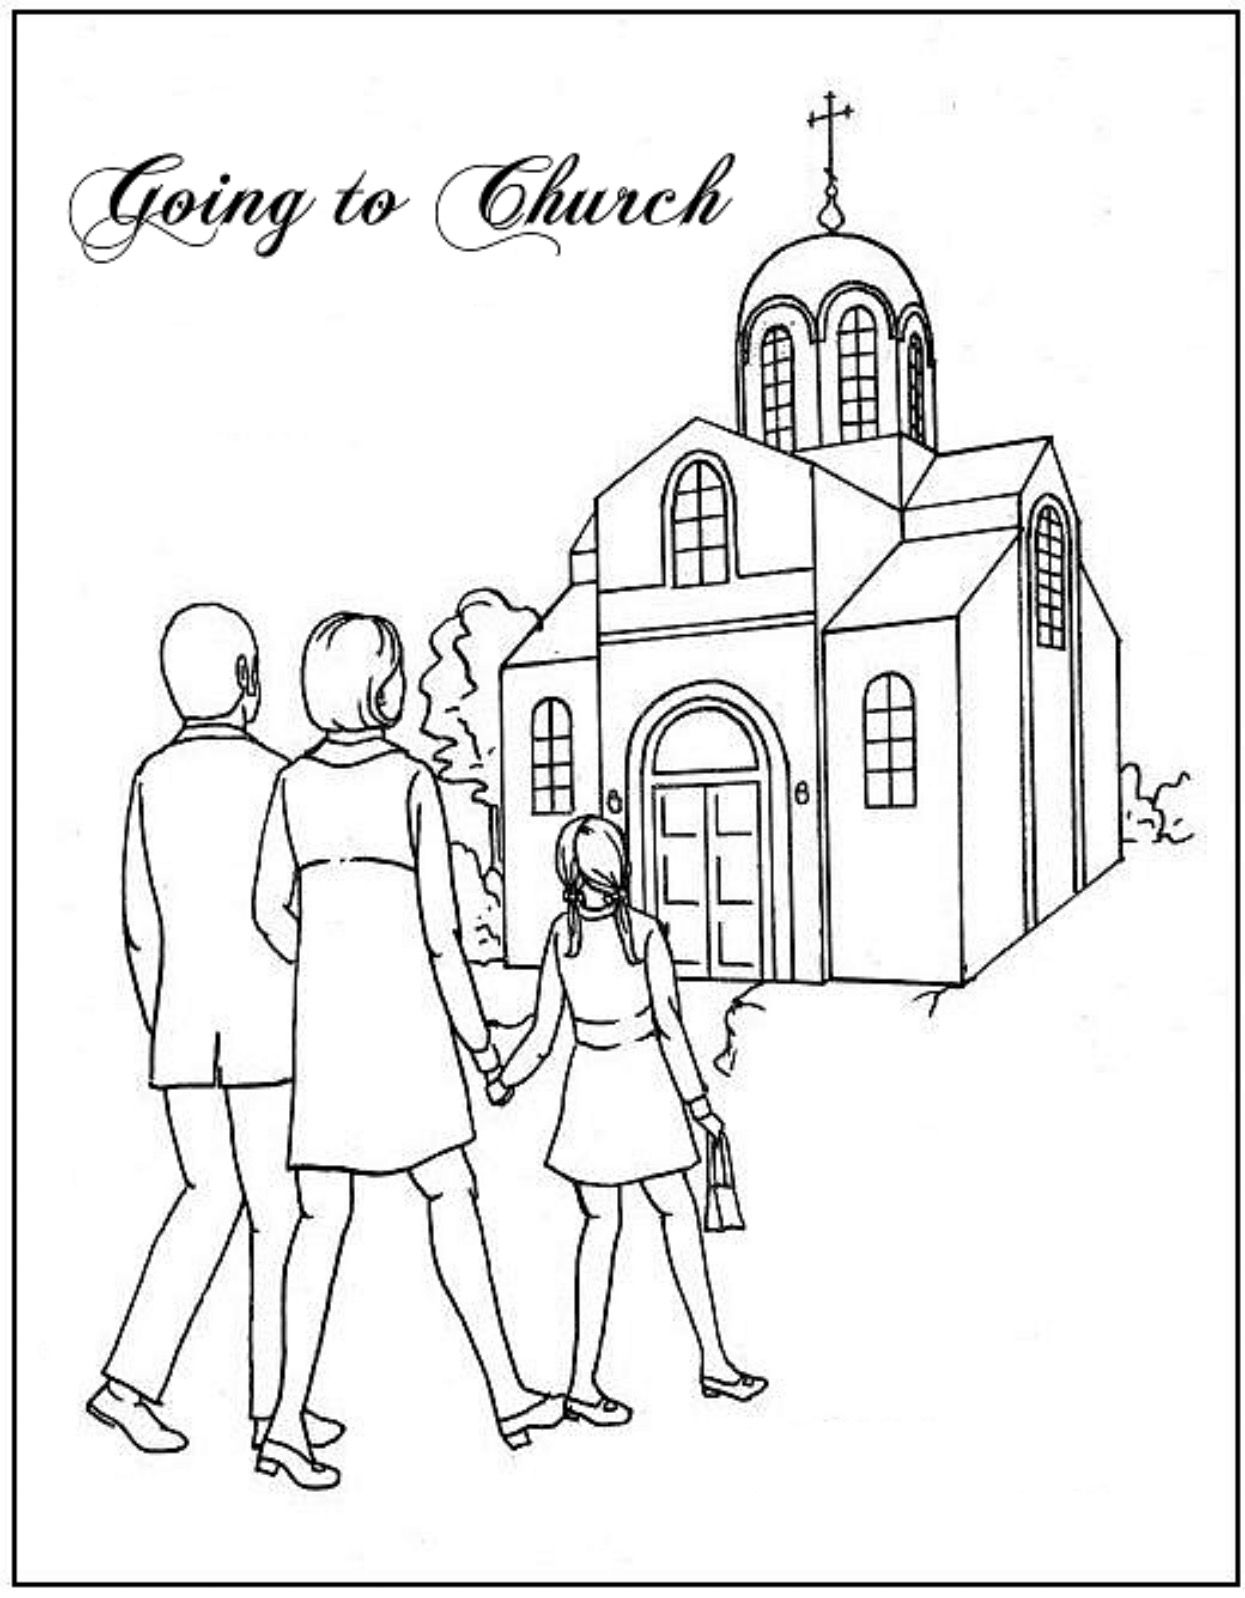 Coloring Page 7 Continents Bible Coloring Pages Sunday School Coloring Pages Christian Coloring